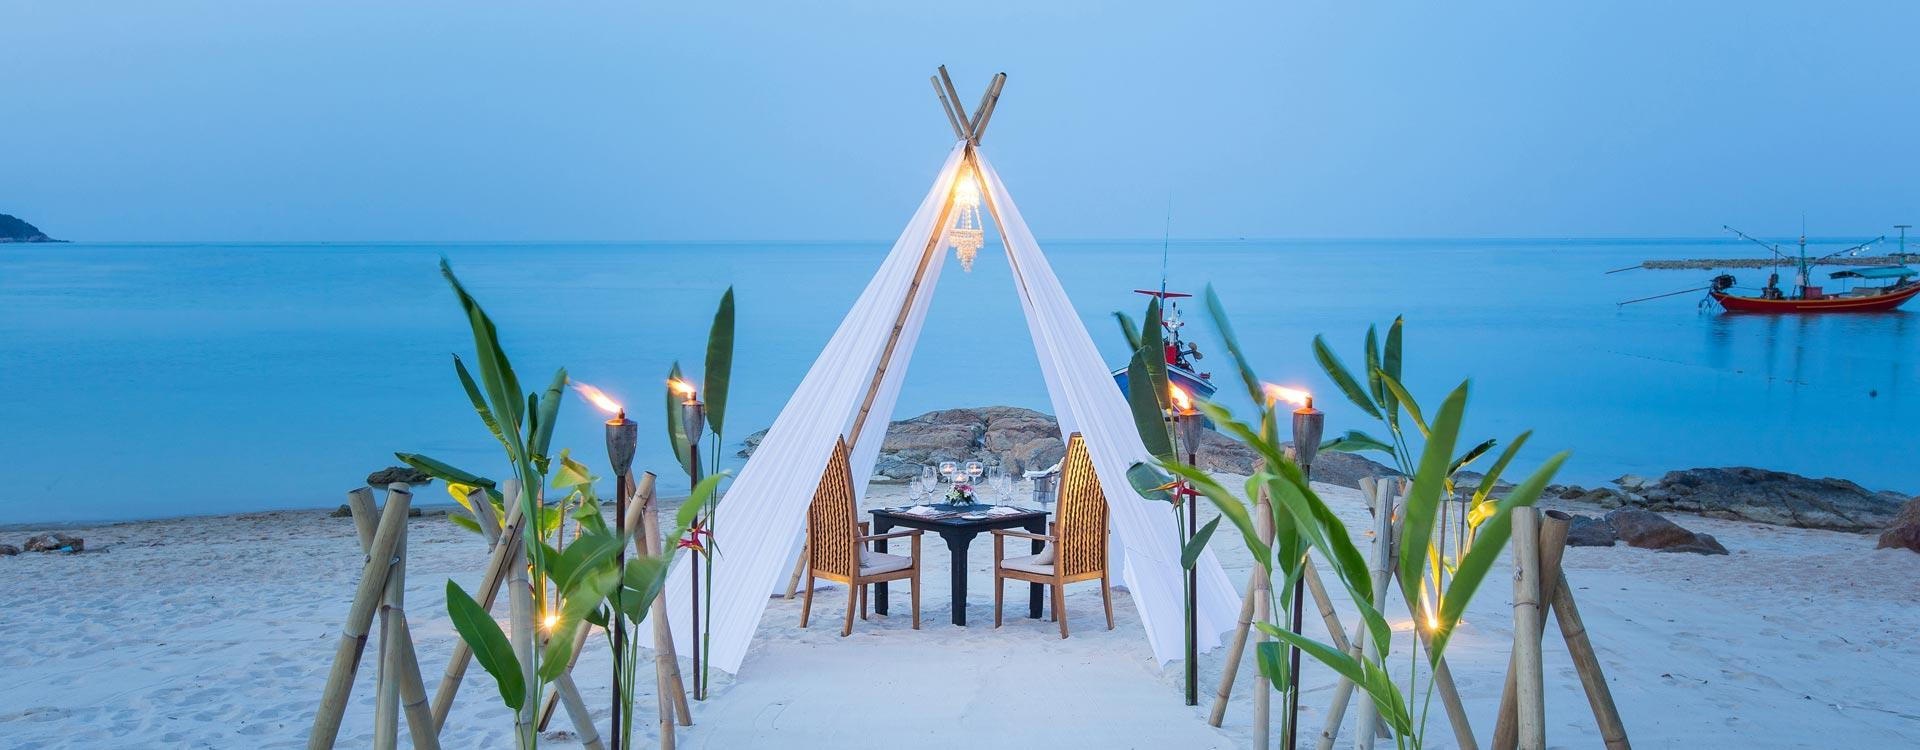 ALS_Local_Experience_Dining_By_Design_On_The_BEach_1920x750